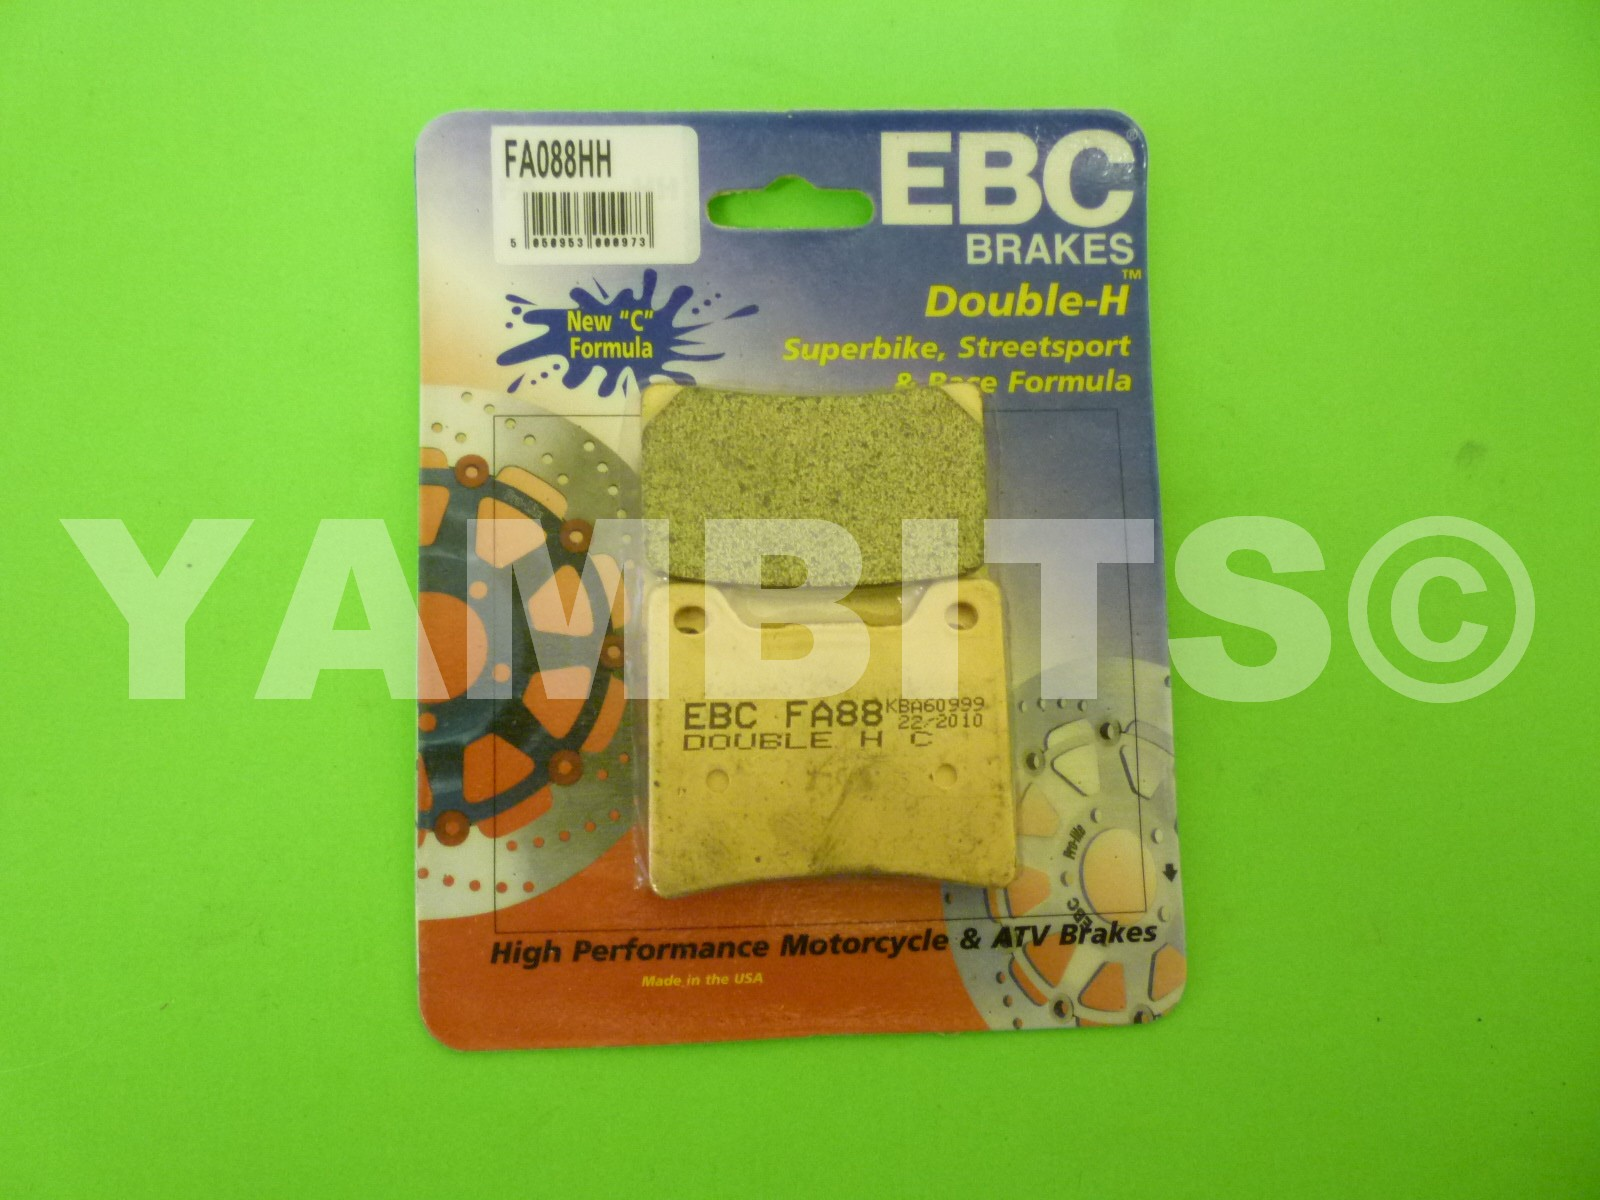 GTS1000 Brake Pads Rear EBC HH Sintered